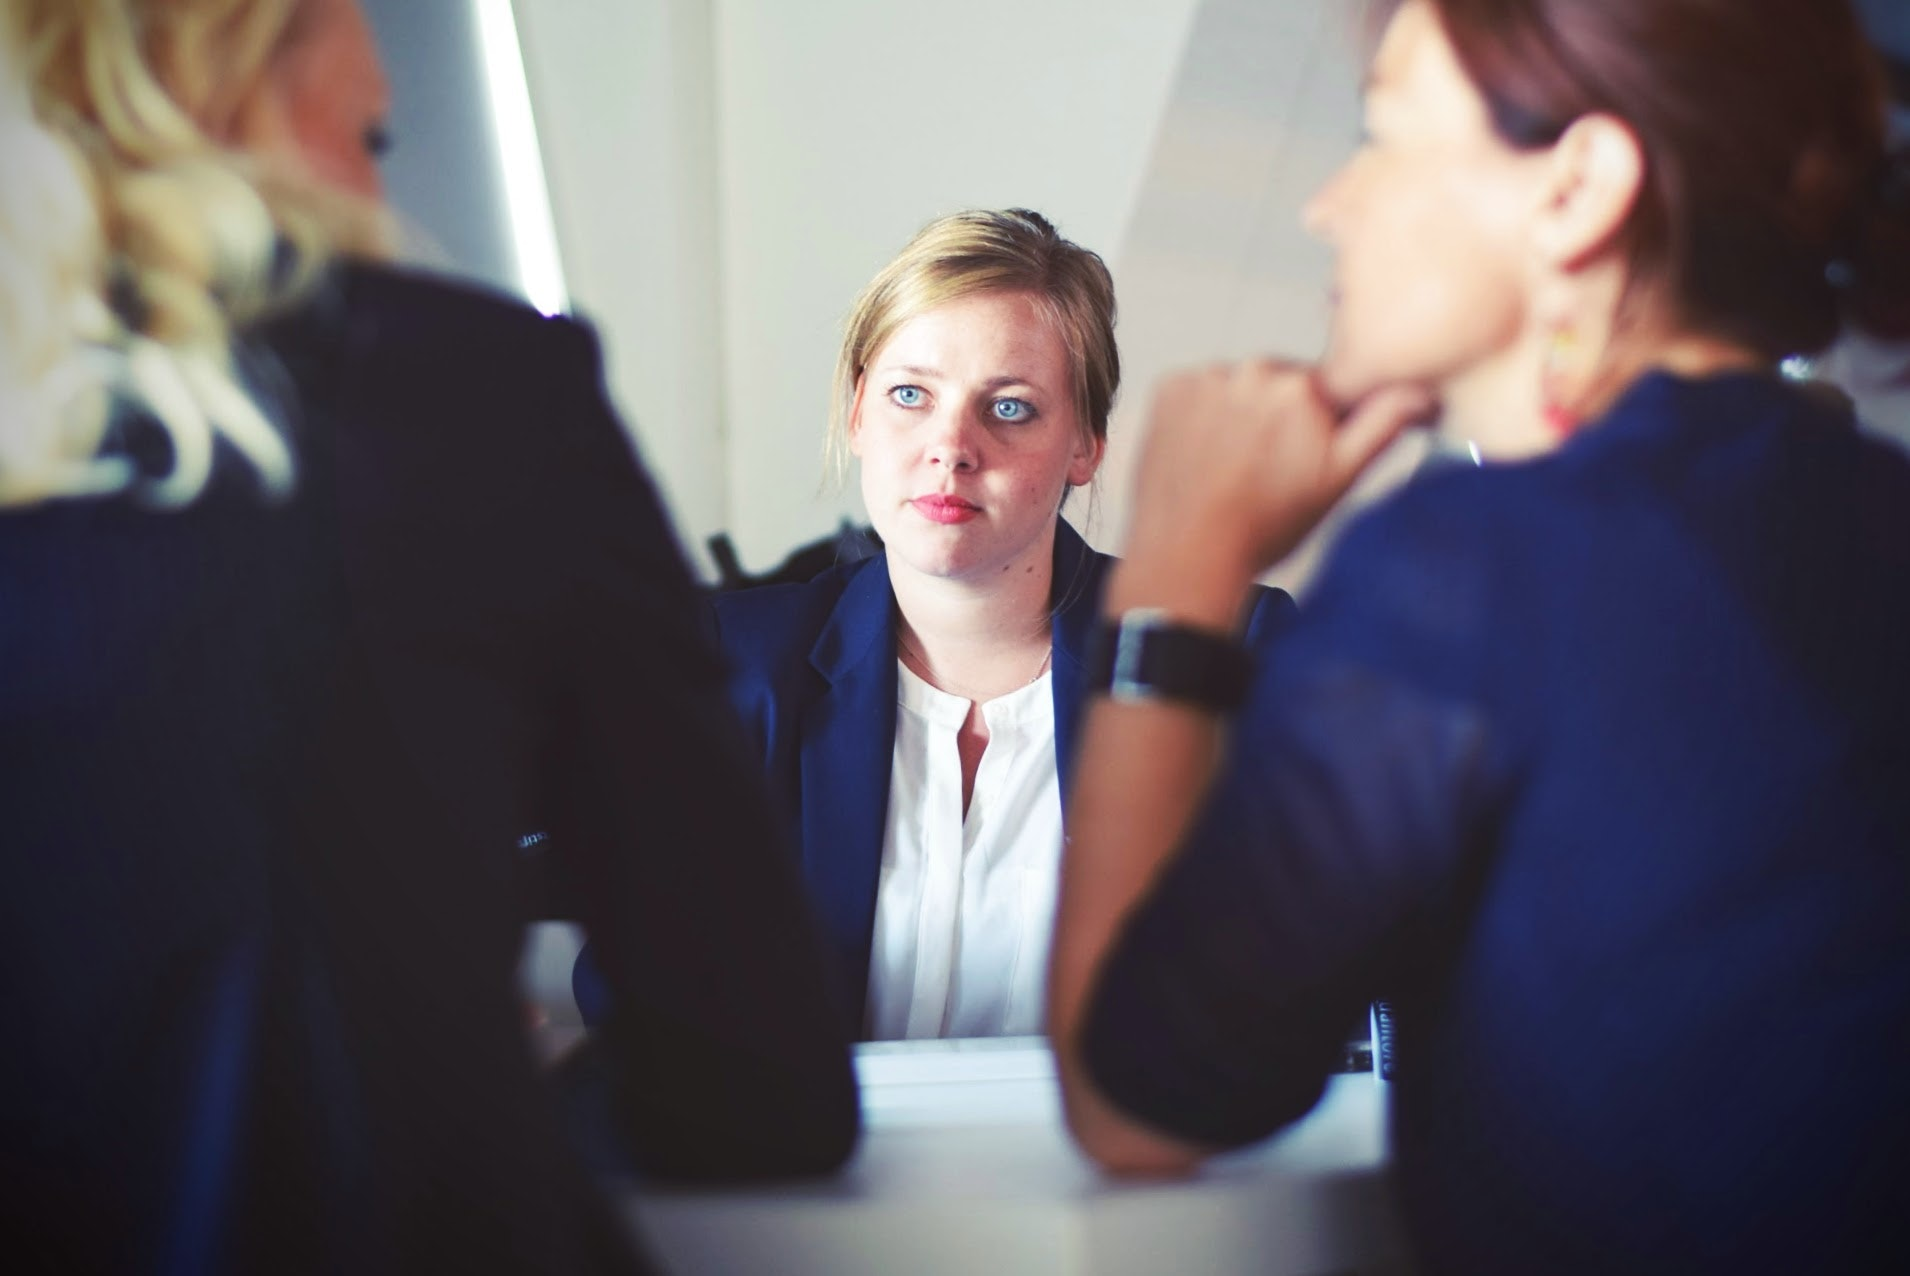 How Aggressive Should Your Lawyer Be?